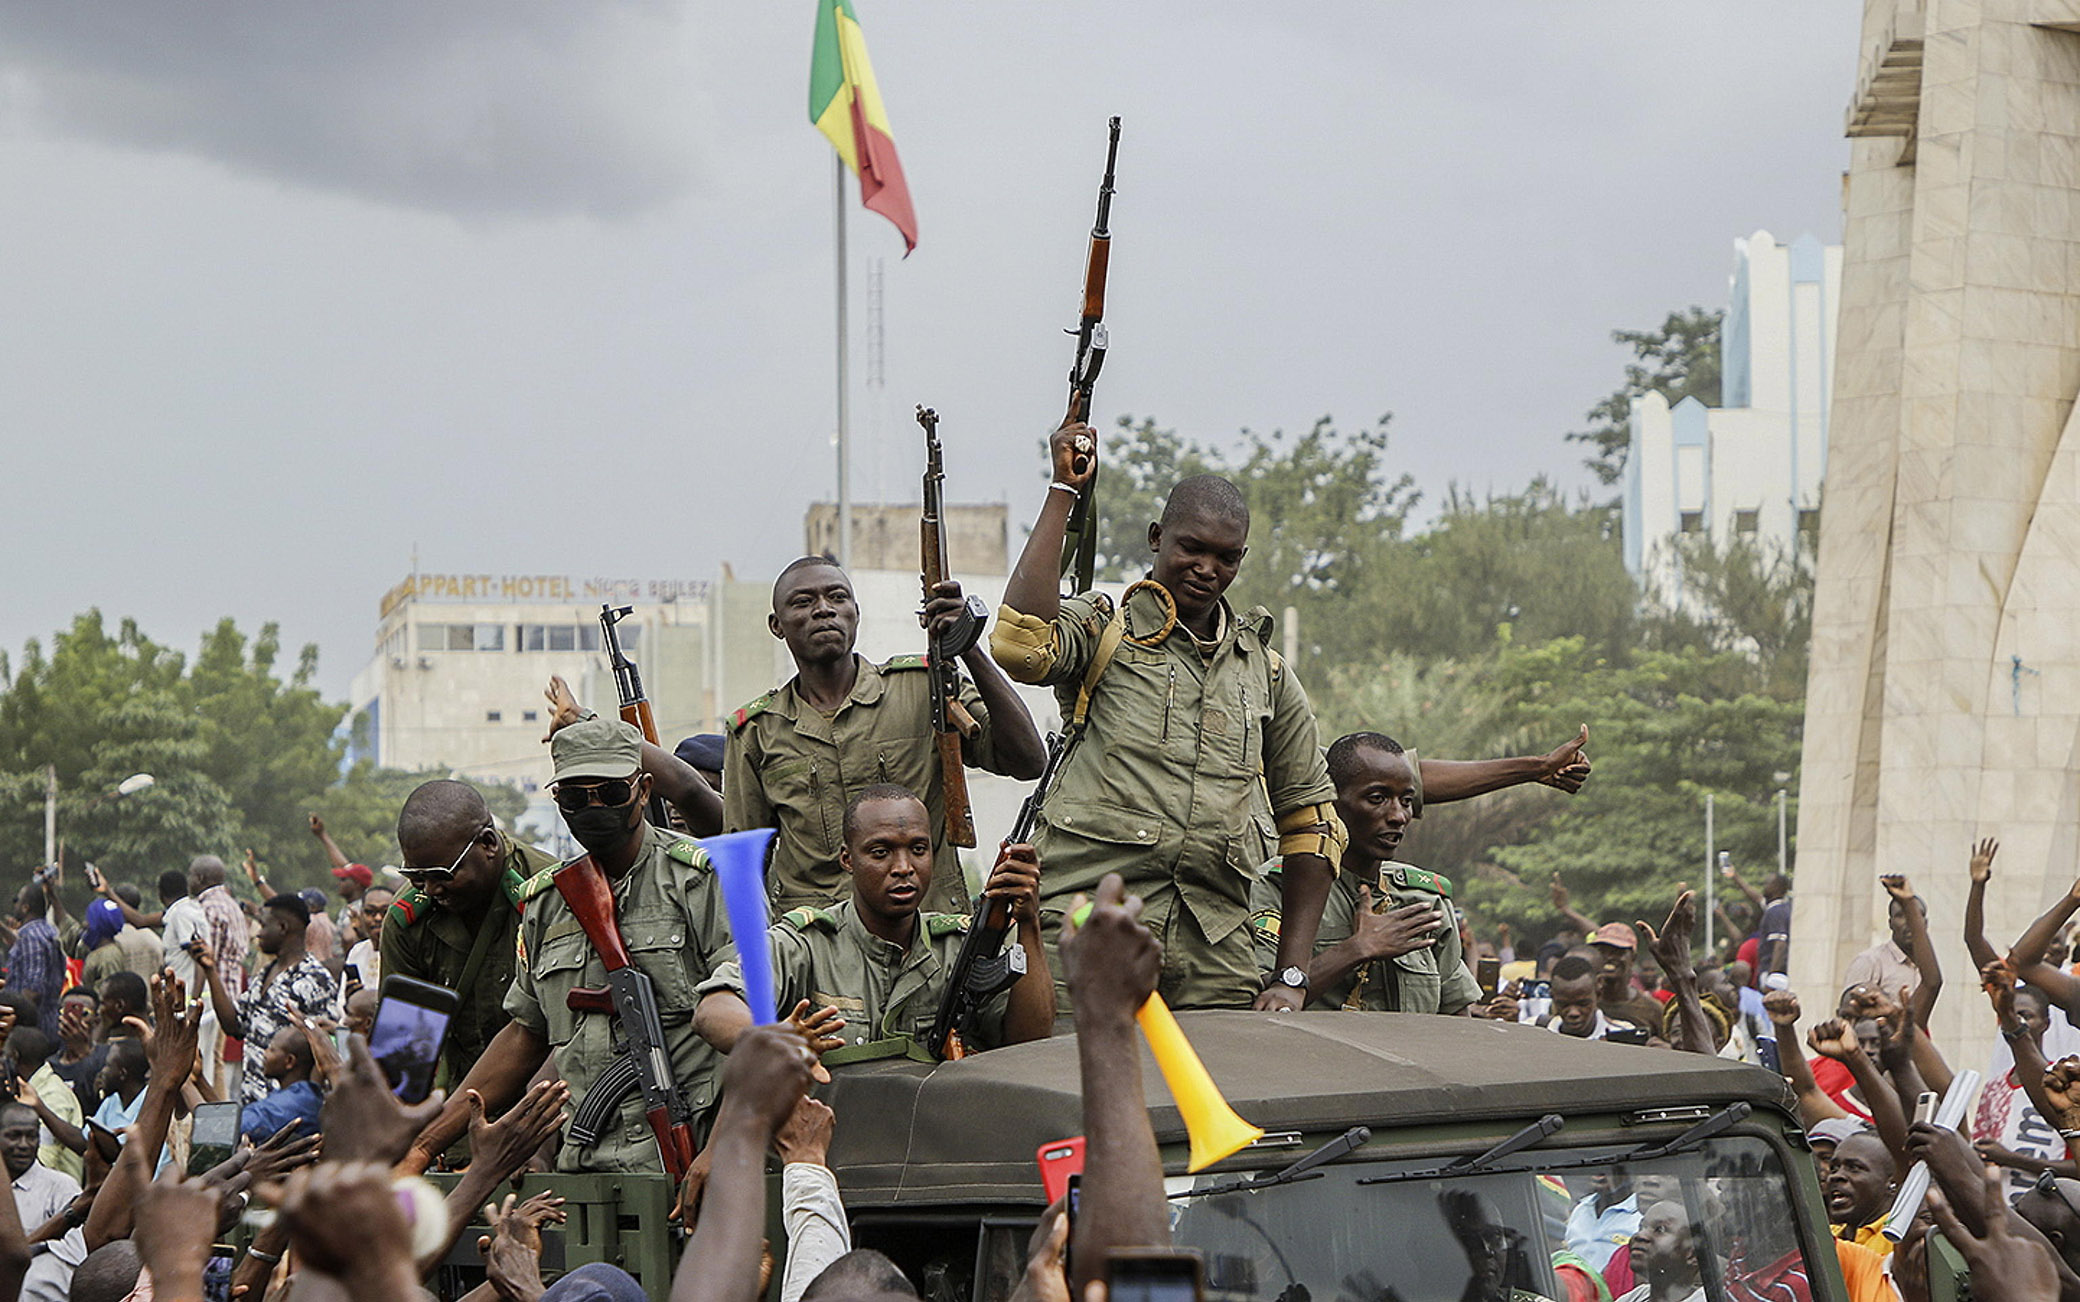 epa08611367 Malians cheer as Mali military enter the streets of Bamako, Mali, 18 August 2020. Local reports indicate Mali military have seized Mali President Ibrahim Boubakar KeÔta in what appears to be a coup attempt. EPA/MOUSSA KALAPO